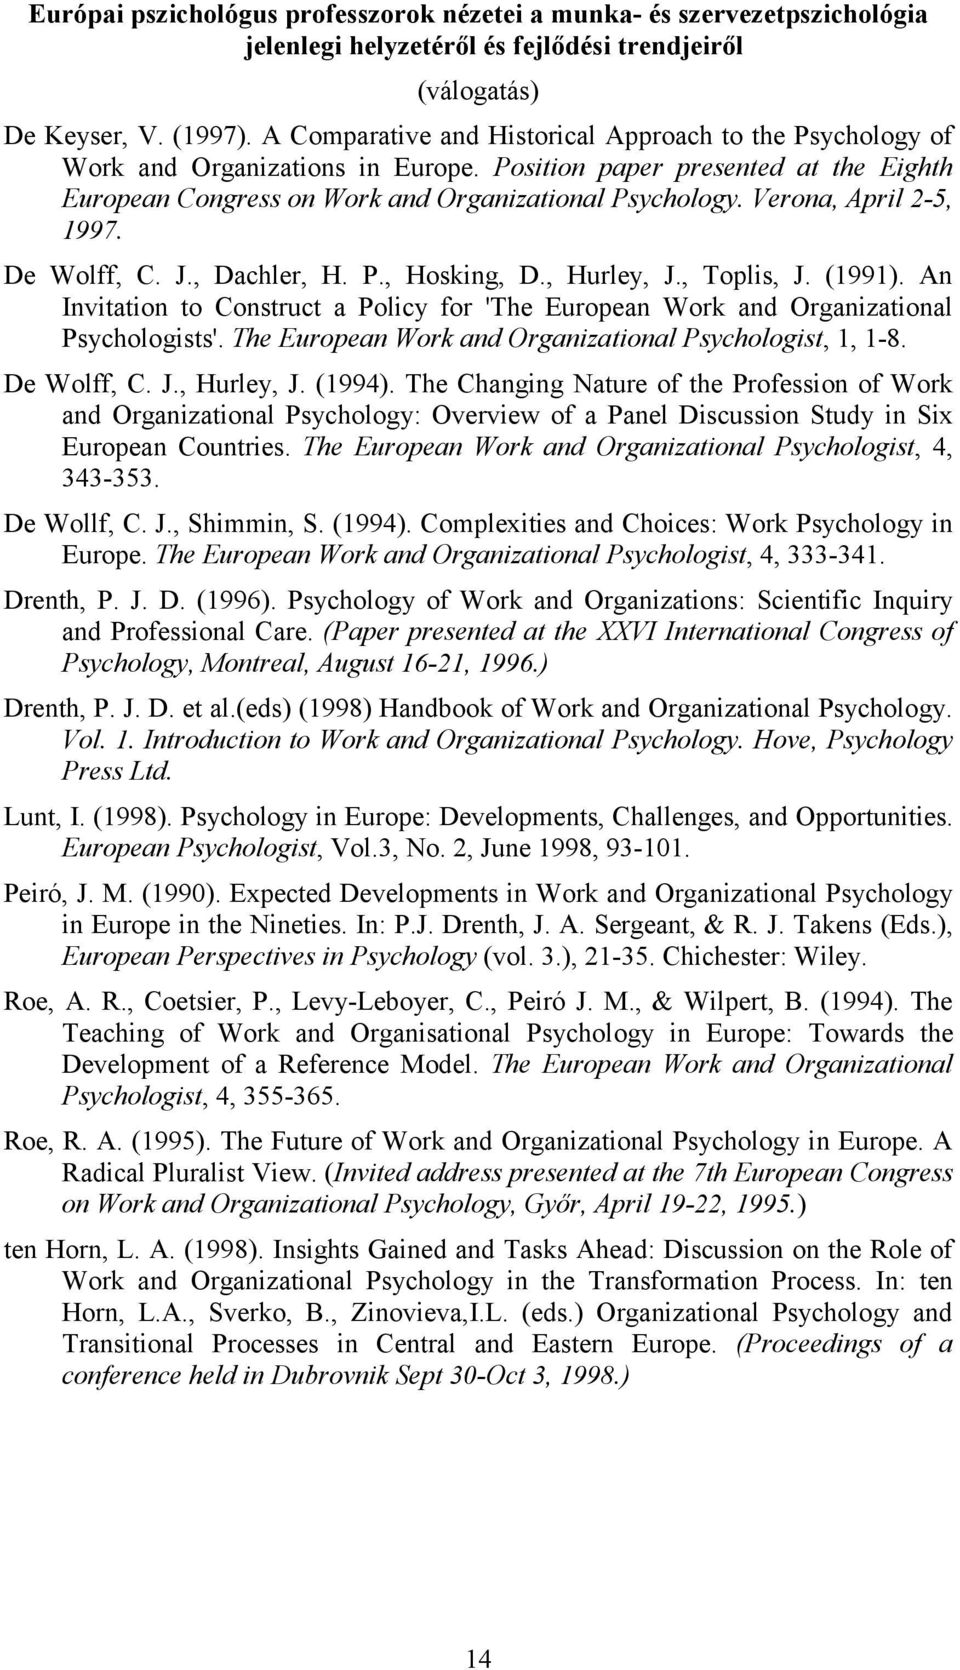 Verona, April 2-5, 1997. De Wolff, C. J., Dachler, H. P., Hosking, D., Hurley, J., Toplis, J. (1991). An Invitation to Construct a Policy for 'The European Work and Organizational Psychologists'.